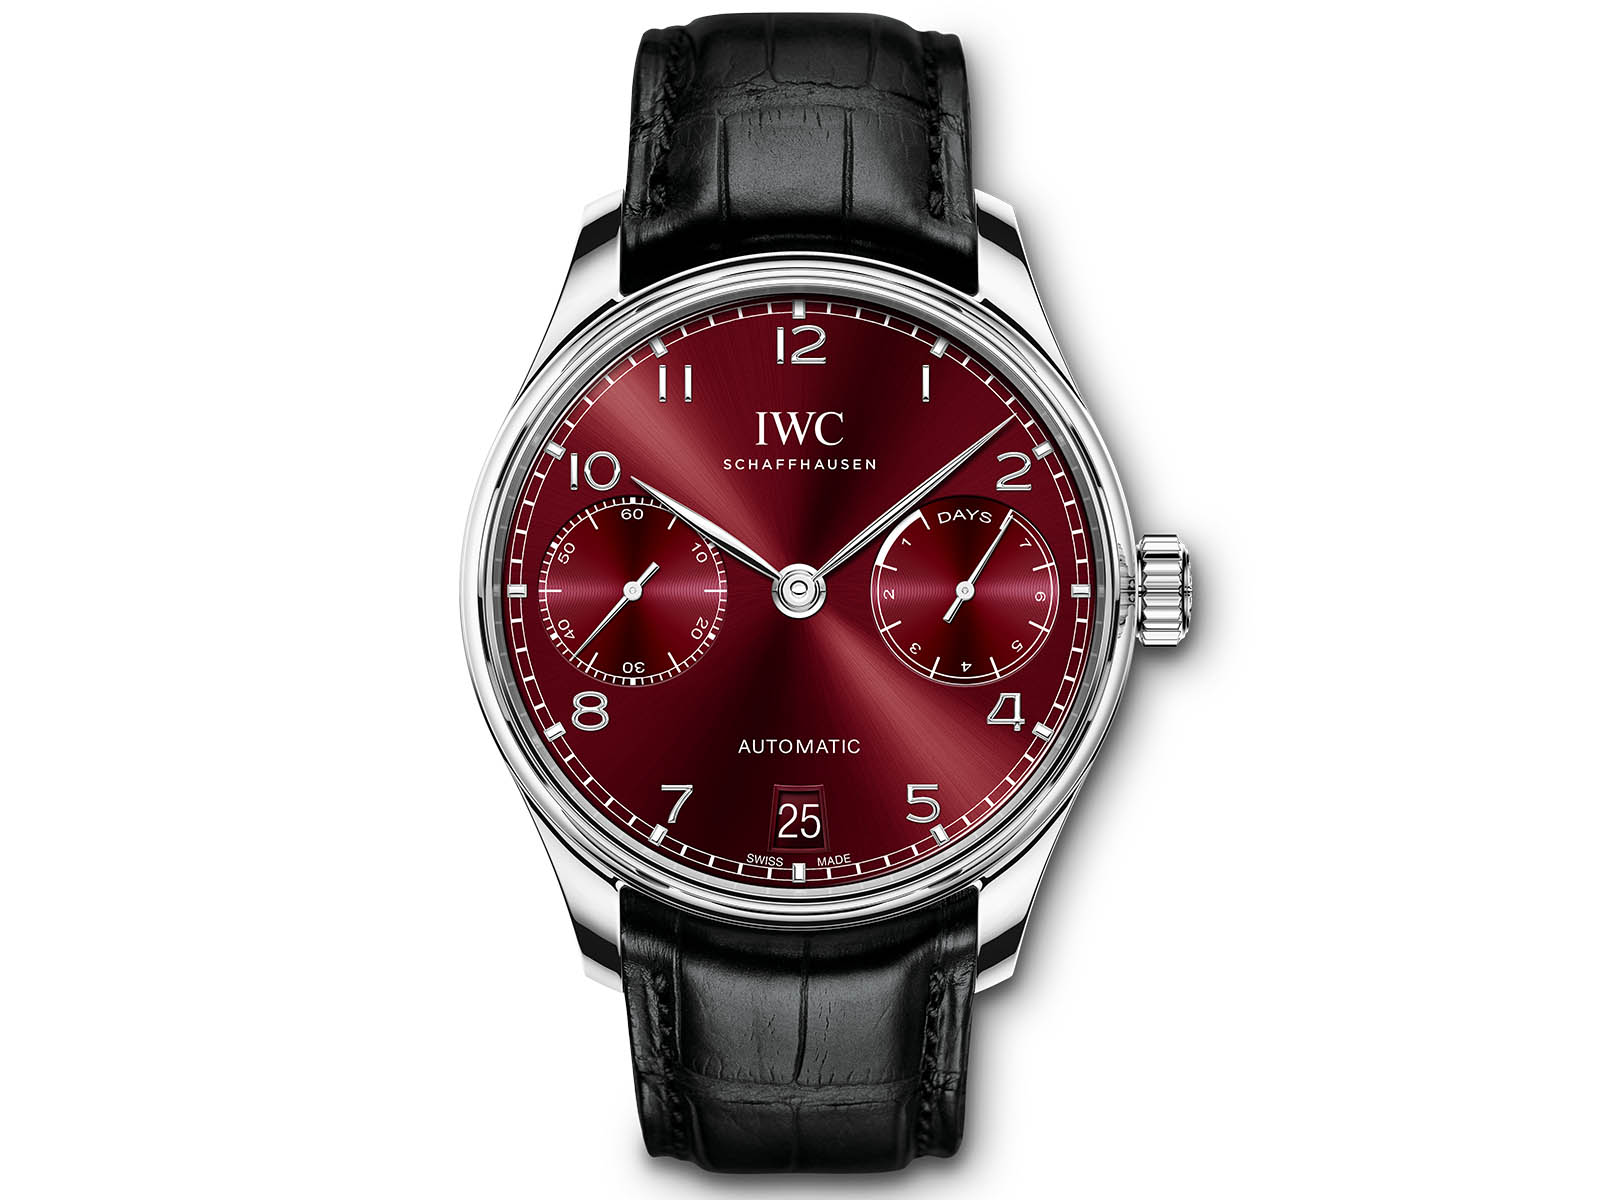 iw500714-iwc-schaffhausen-portugieser-automatic-watches-wonders-2020-1.jpg